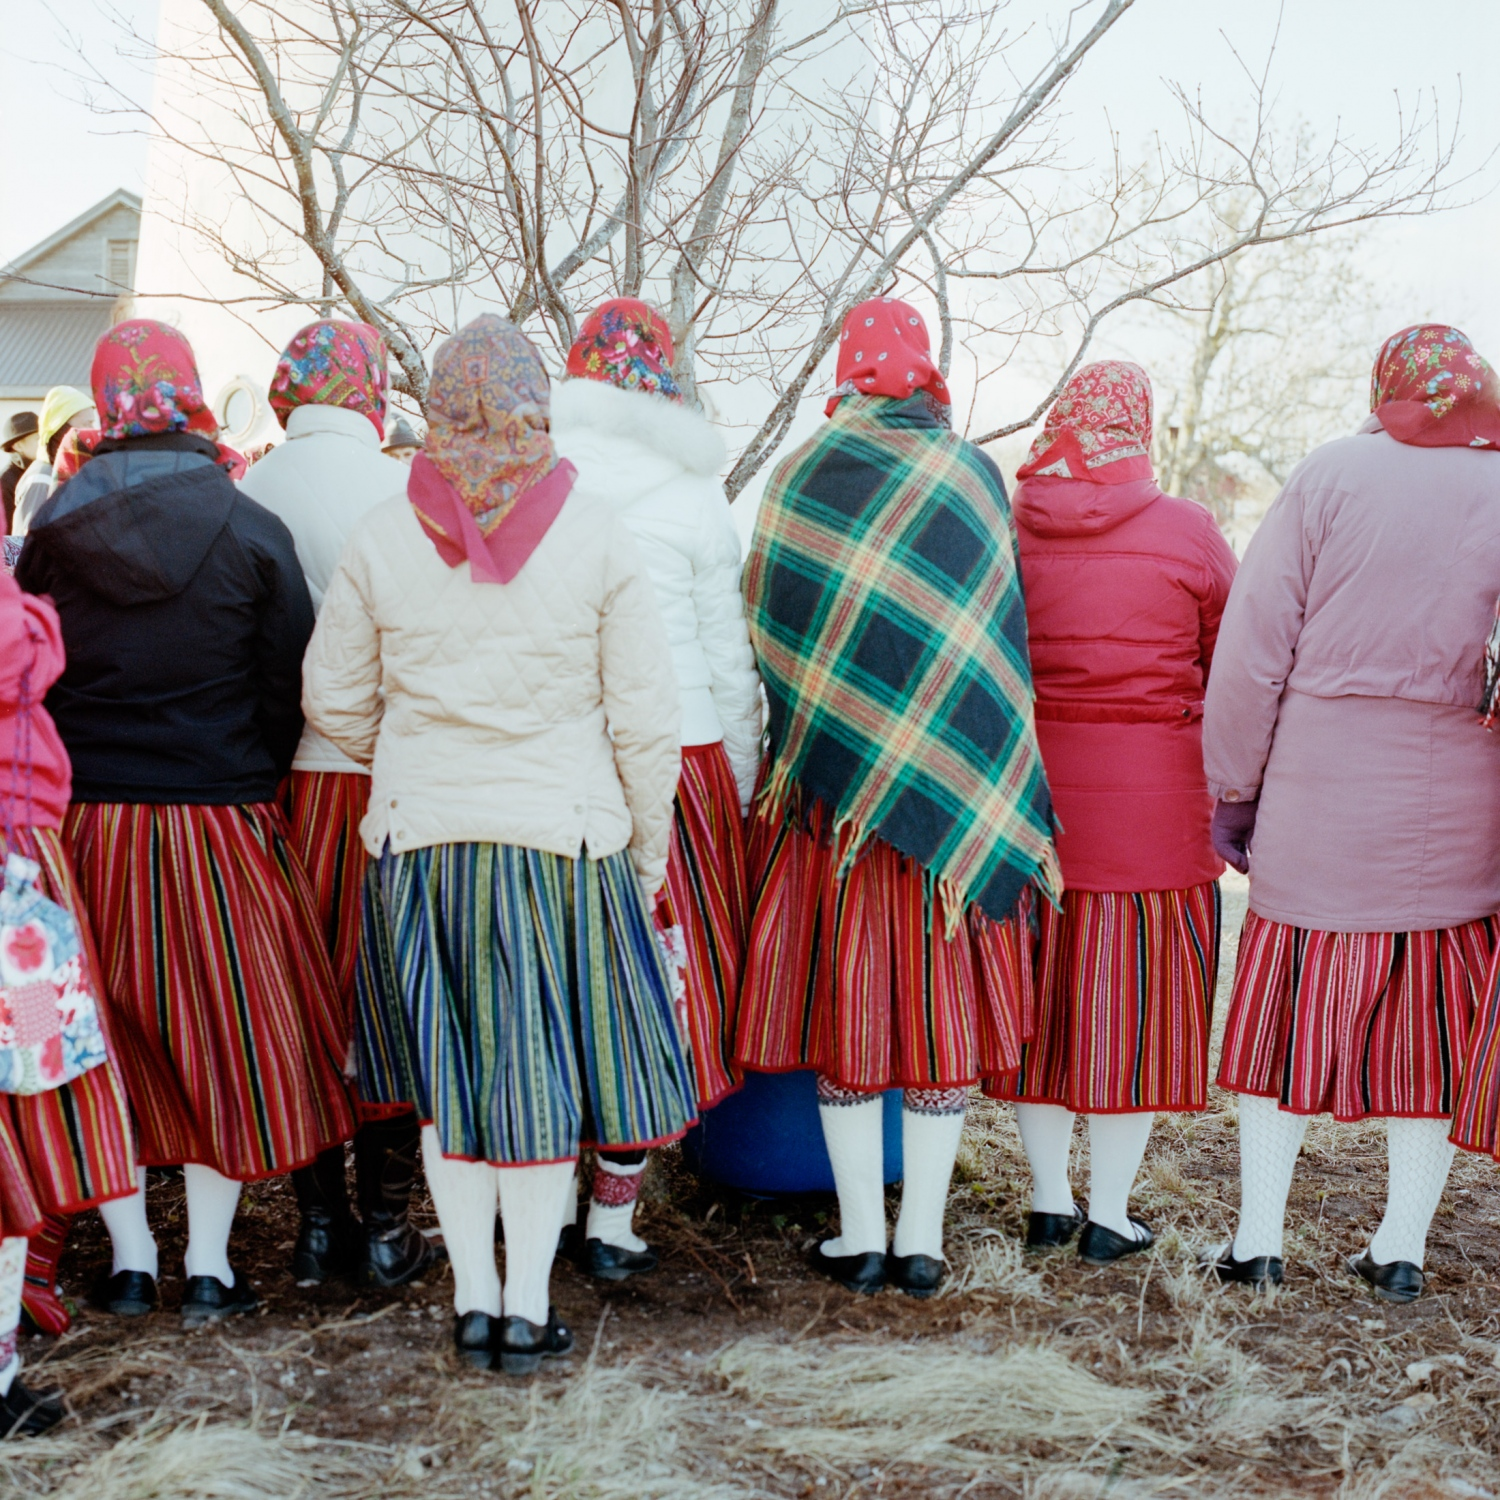 The colour of this skirt is imbued with meaning. During mourning, the skirt should be black, and progressively, with time, blue will be reintroduced before the skirt eventually turns bright red again. As skirts always retain some mark from the mourning period, younger women tend to wear much brighter skirts than older women.